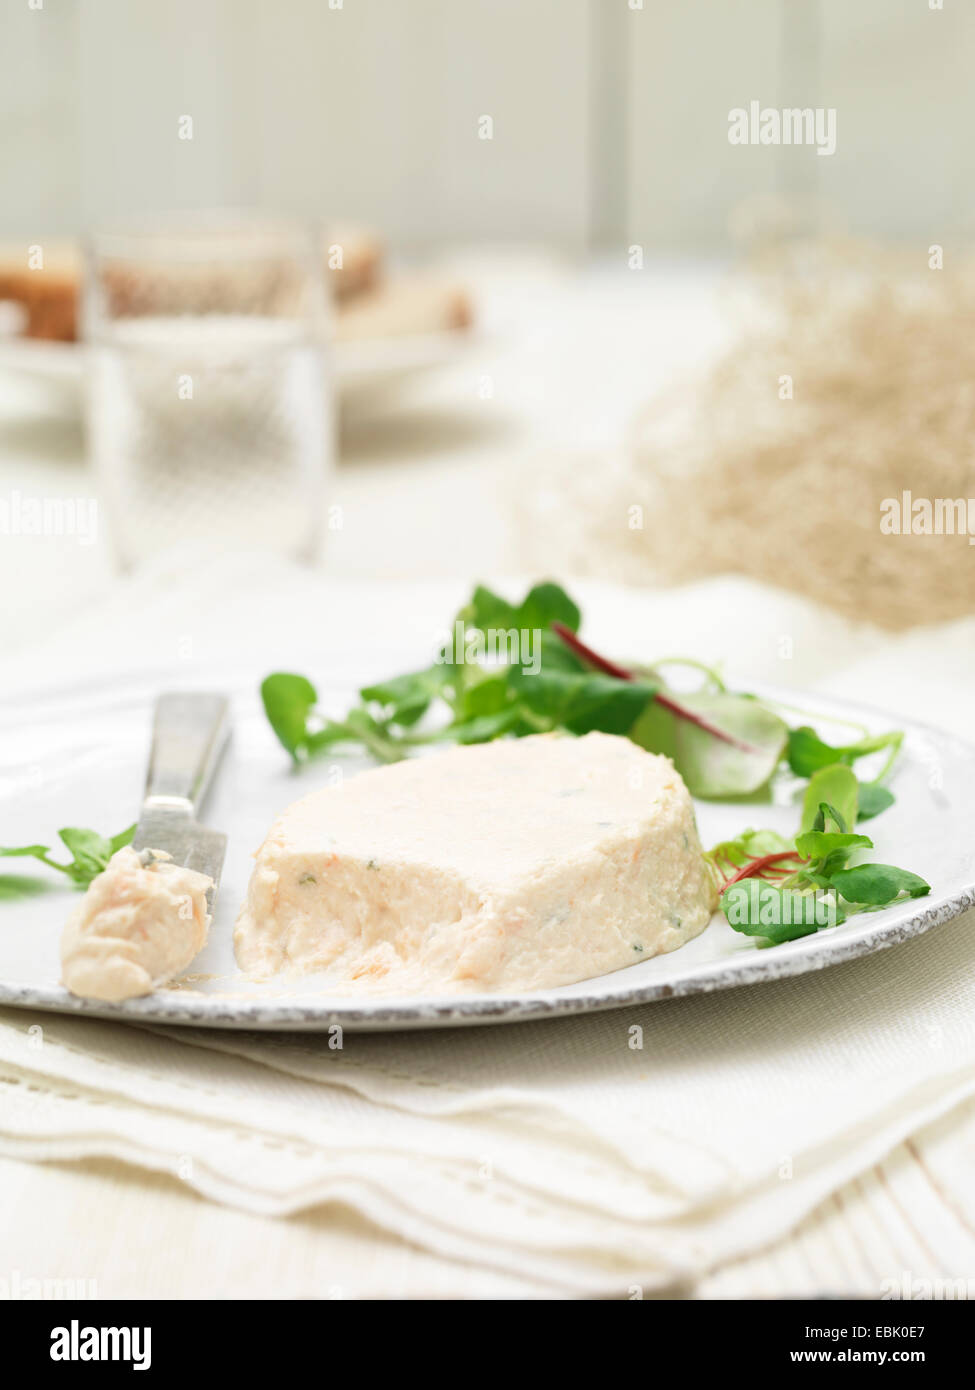 Plate of Scottish poached salmon terrines on savory biscuits chard salad garnish - Stock Image